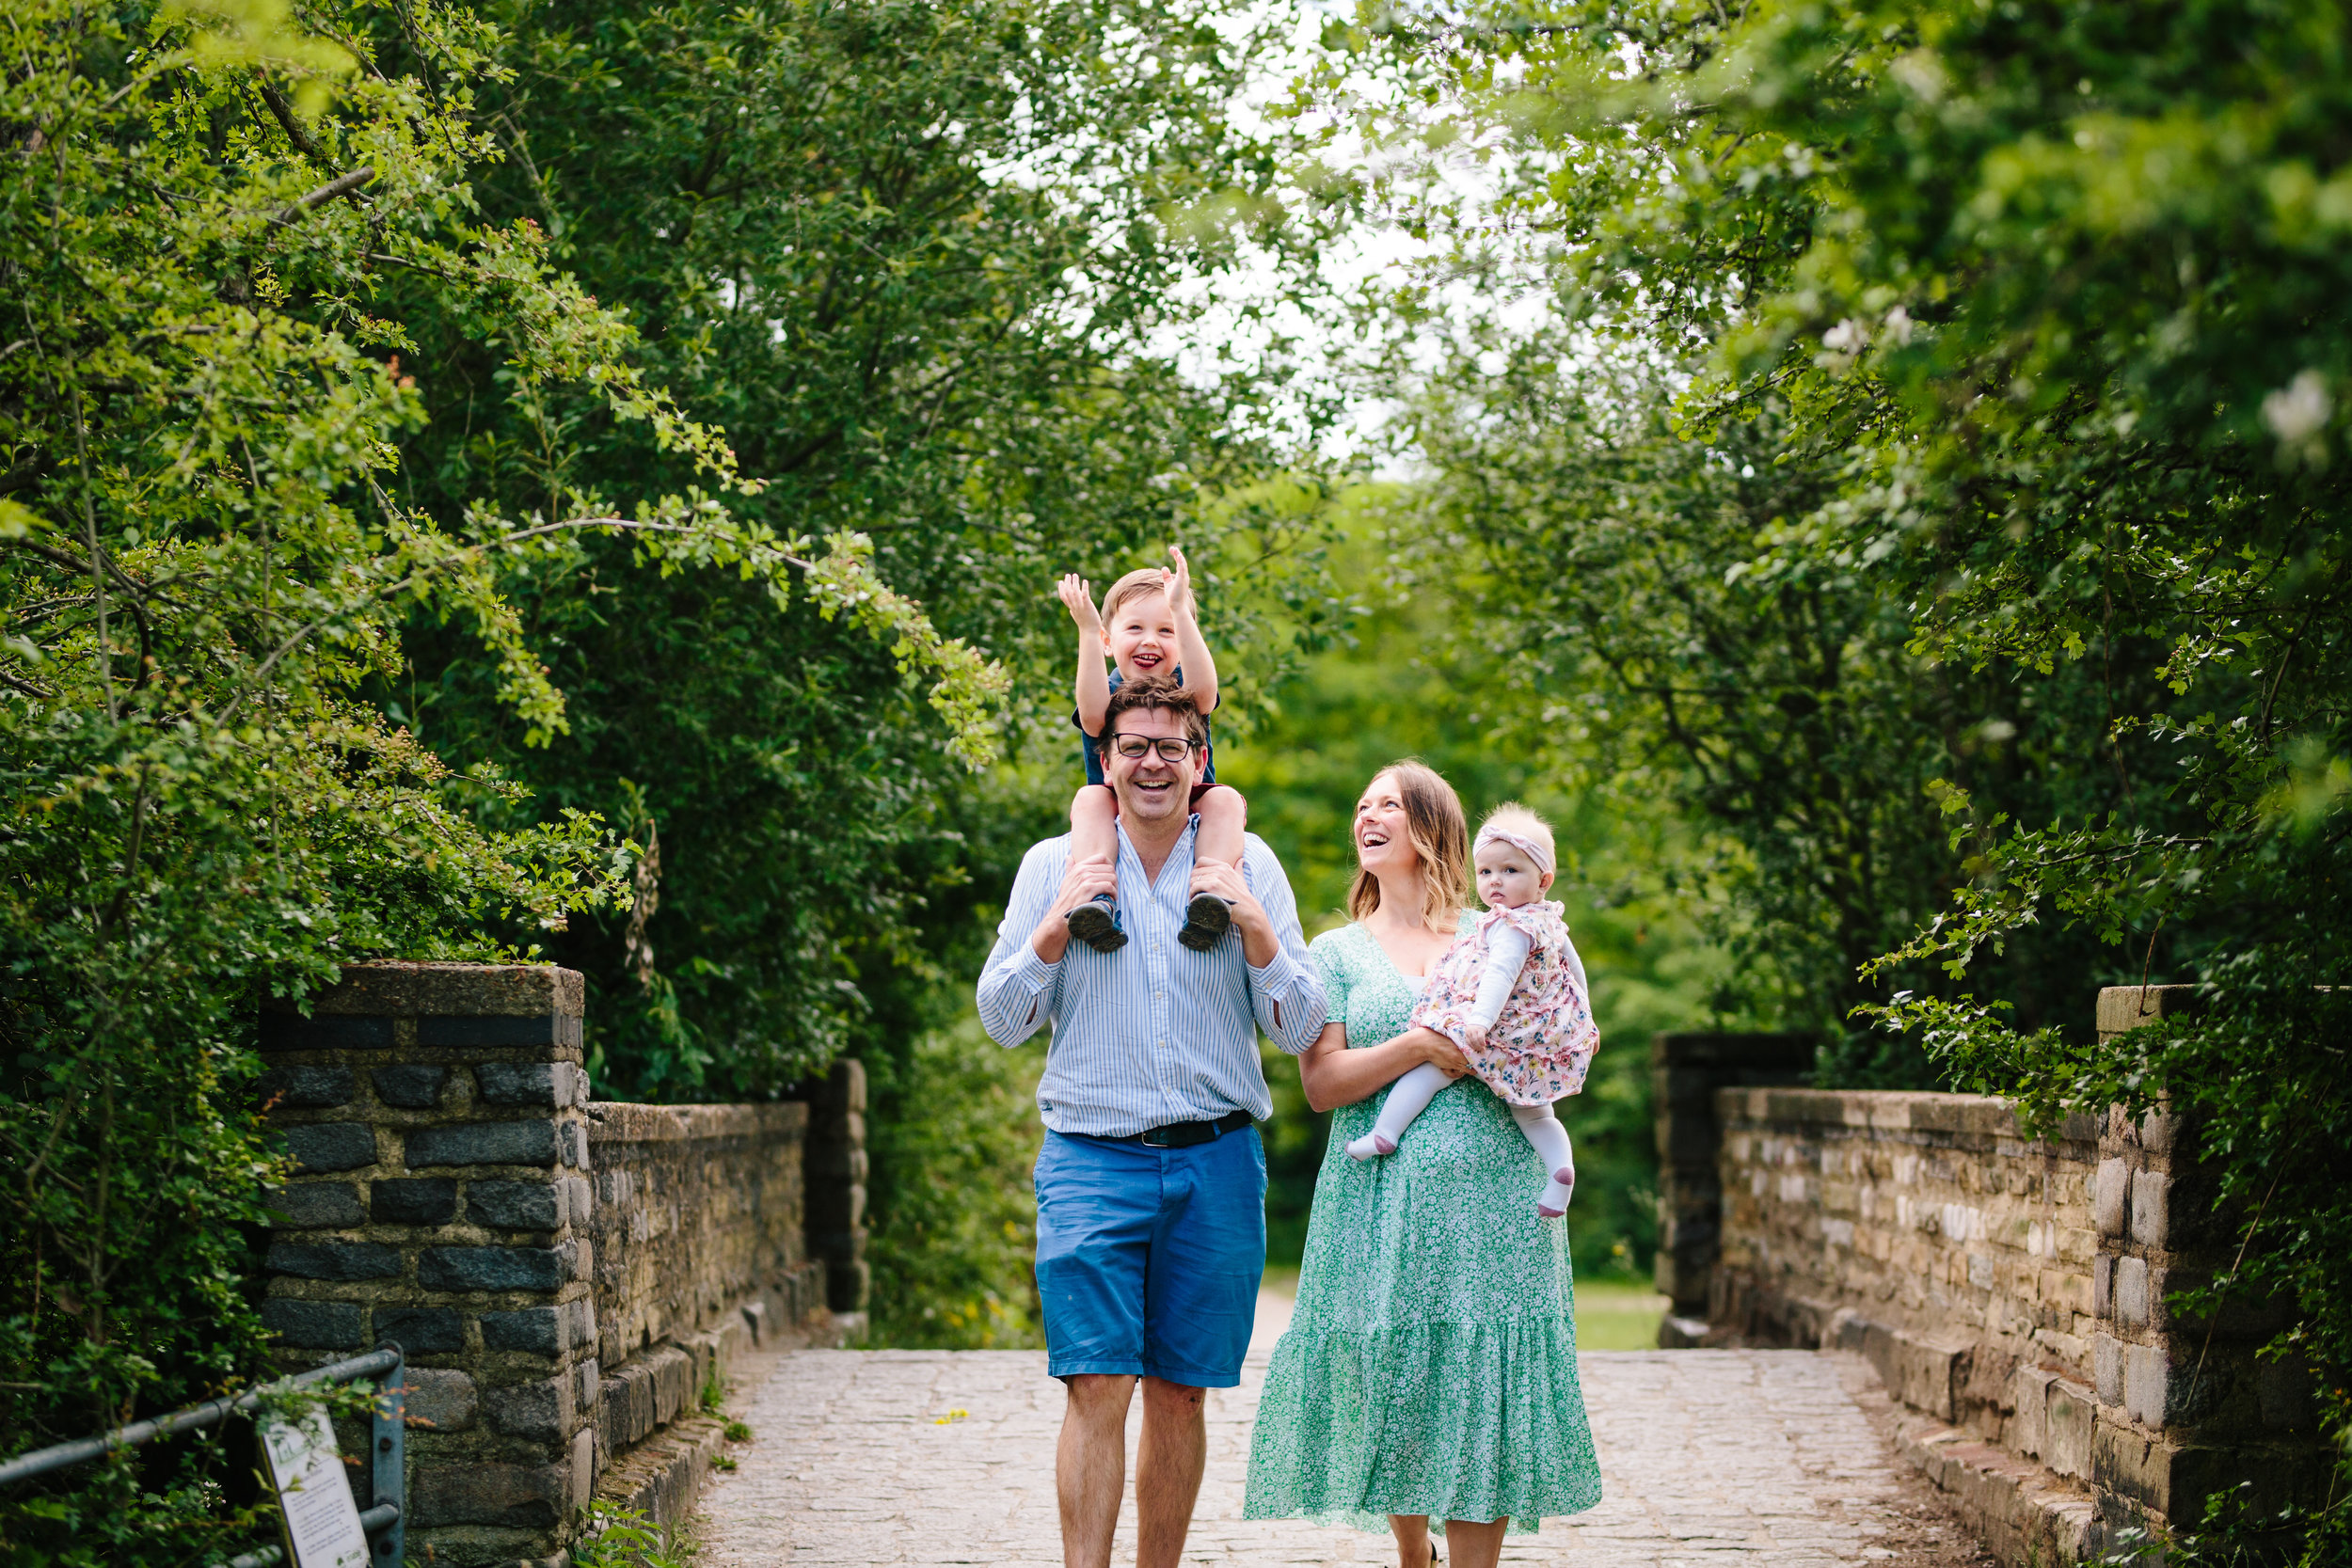 Wandsworth common family photoshoot | London photographer